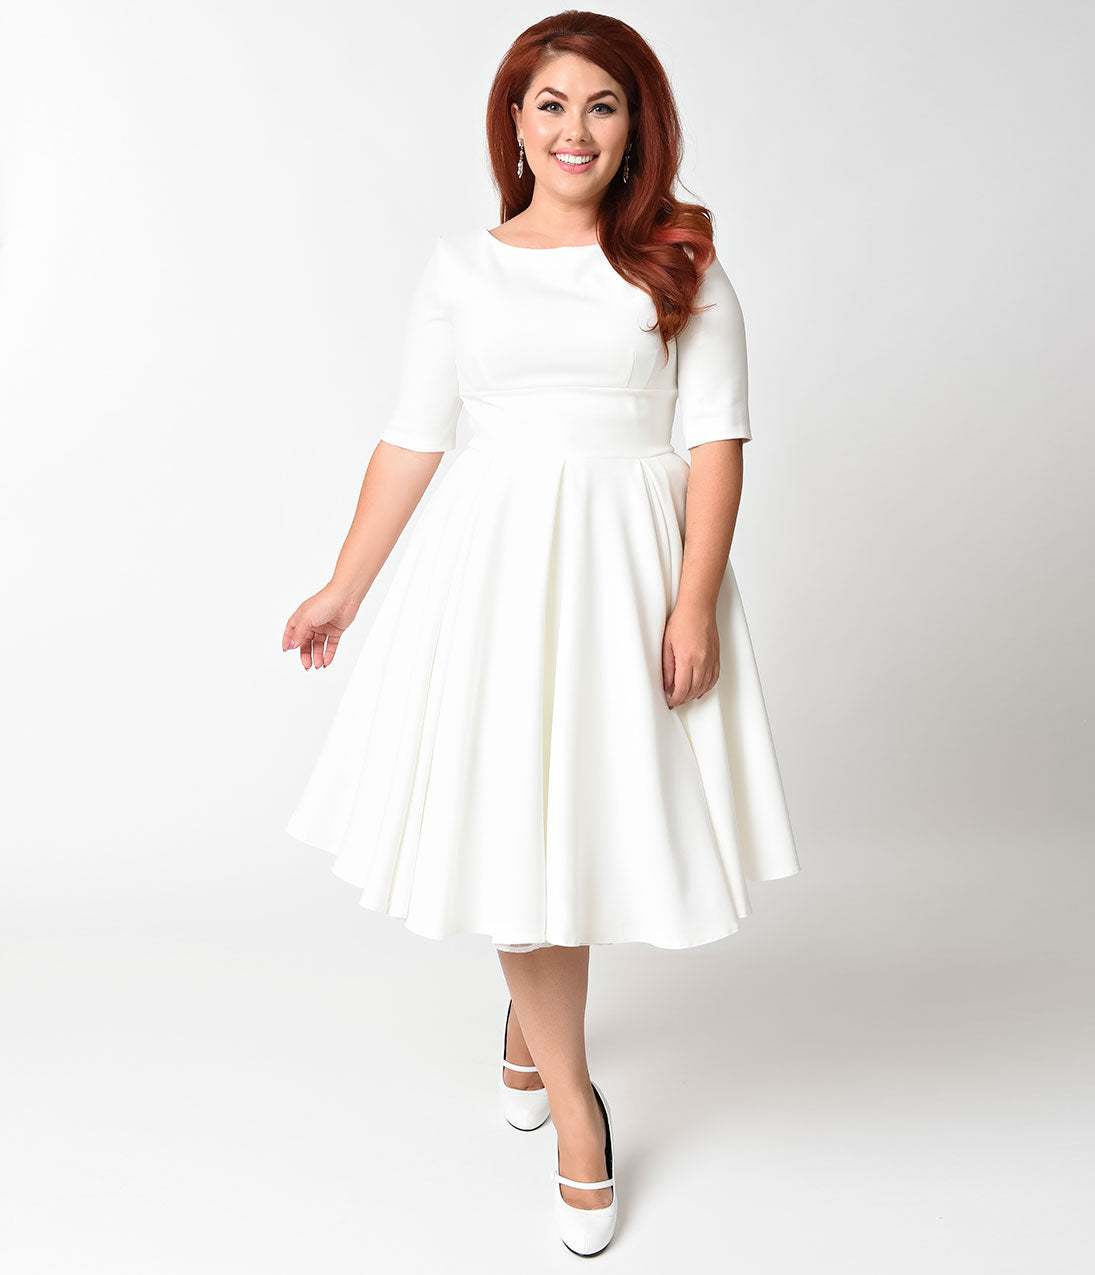 60s Wedding Dresses | 70s Wedding Dresses The Pretty Dress Company Plus Size Ivory Crepe Sleeved Hepburn Swing Dress $172.00 AT vintagedancer.com